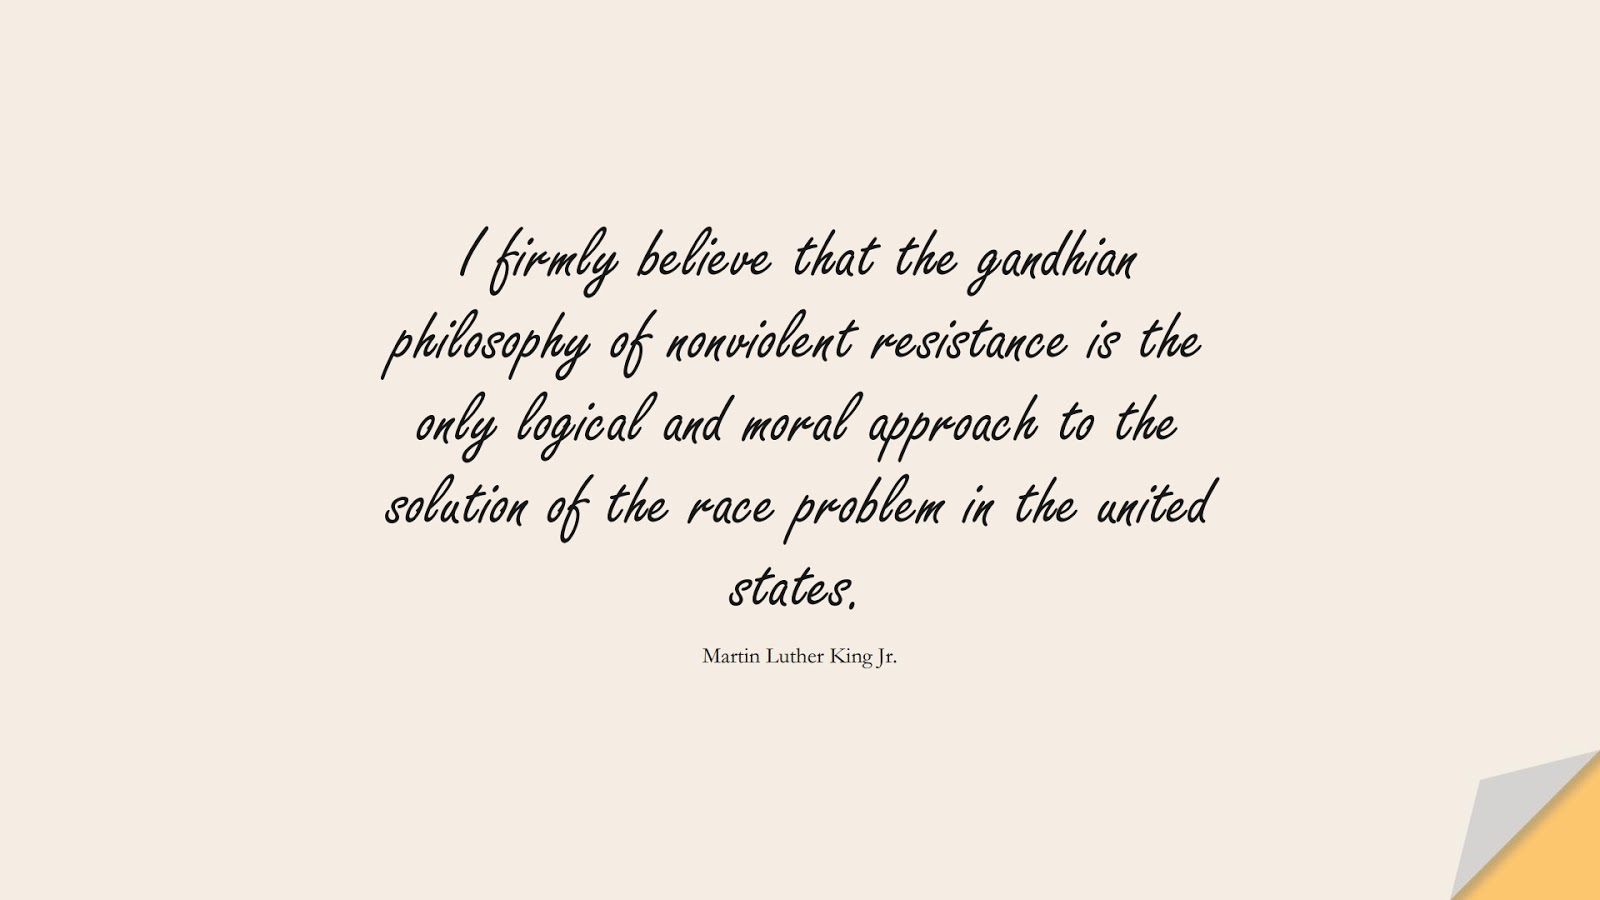 I firmly believe that the gandhian philosophy of nonviolent resistance is the only logical and moral approach to the solution of the race problem in the united states. (Martin Luther King Jr.);  #MartinLutherKingJrQuotes